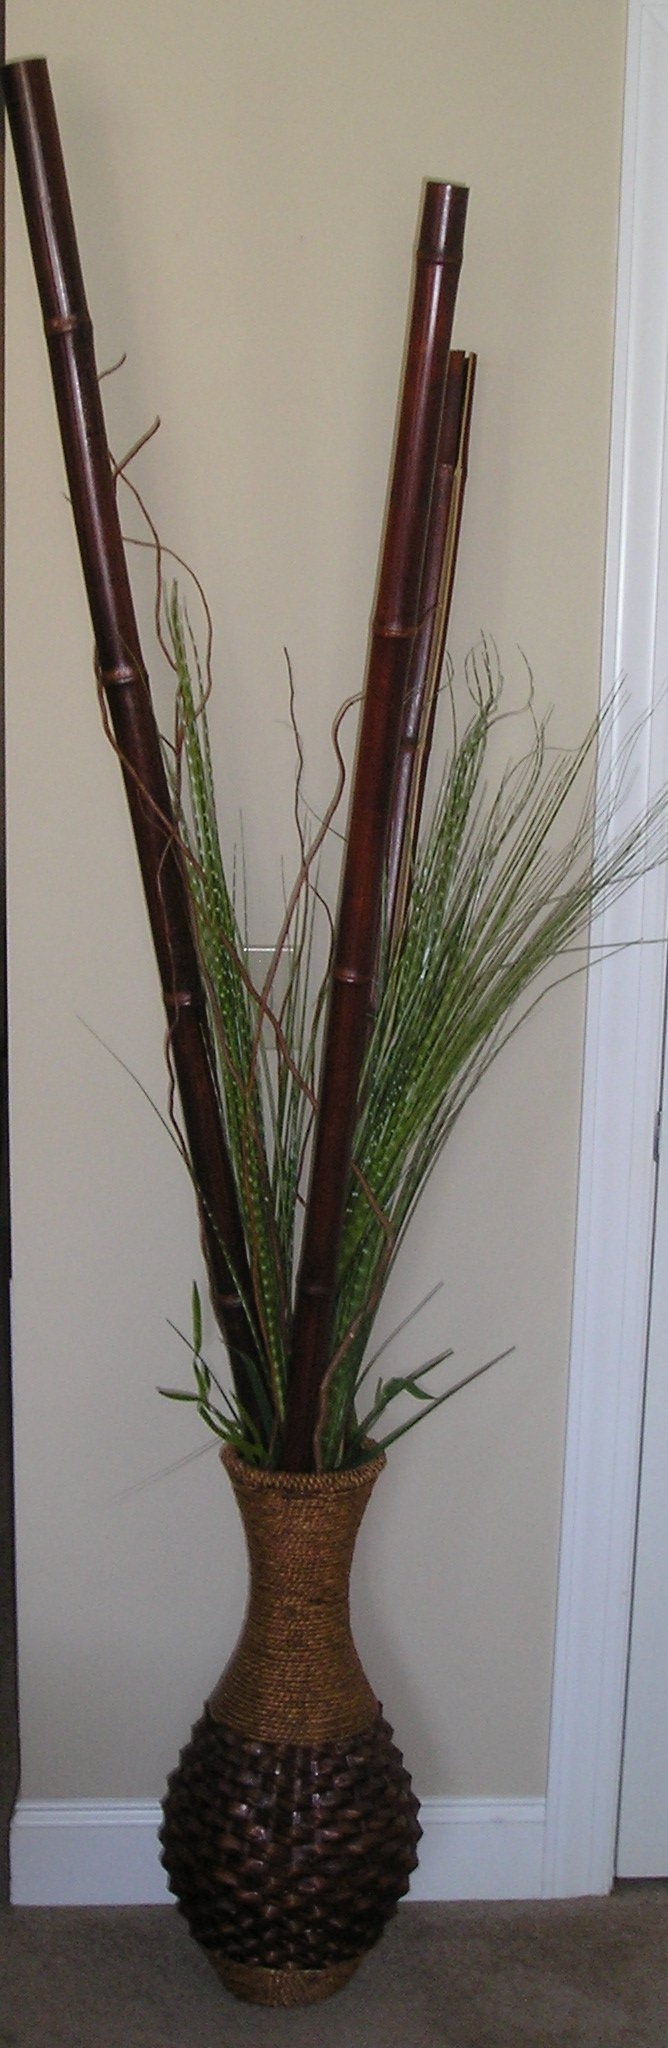 Tall Bamboo Sticks ~ Best images about vase ideas on pinterest waiting